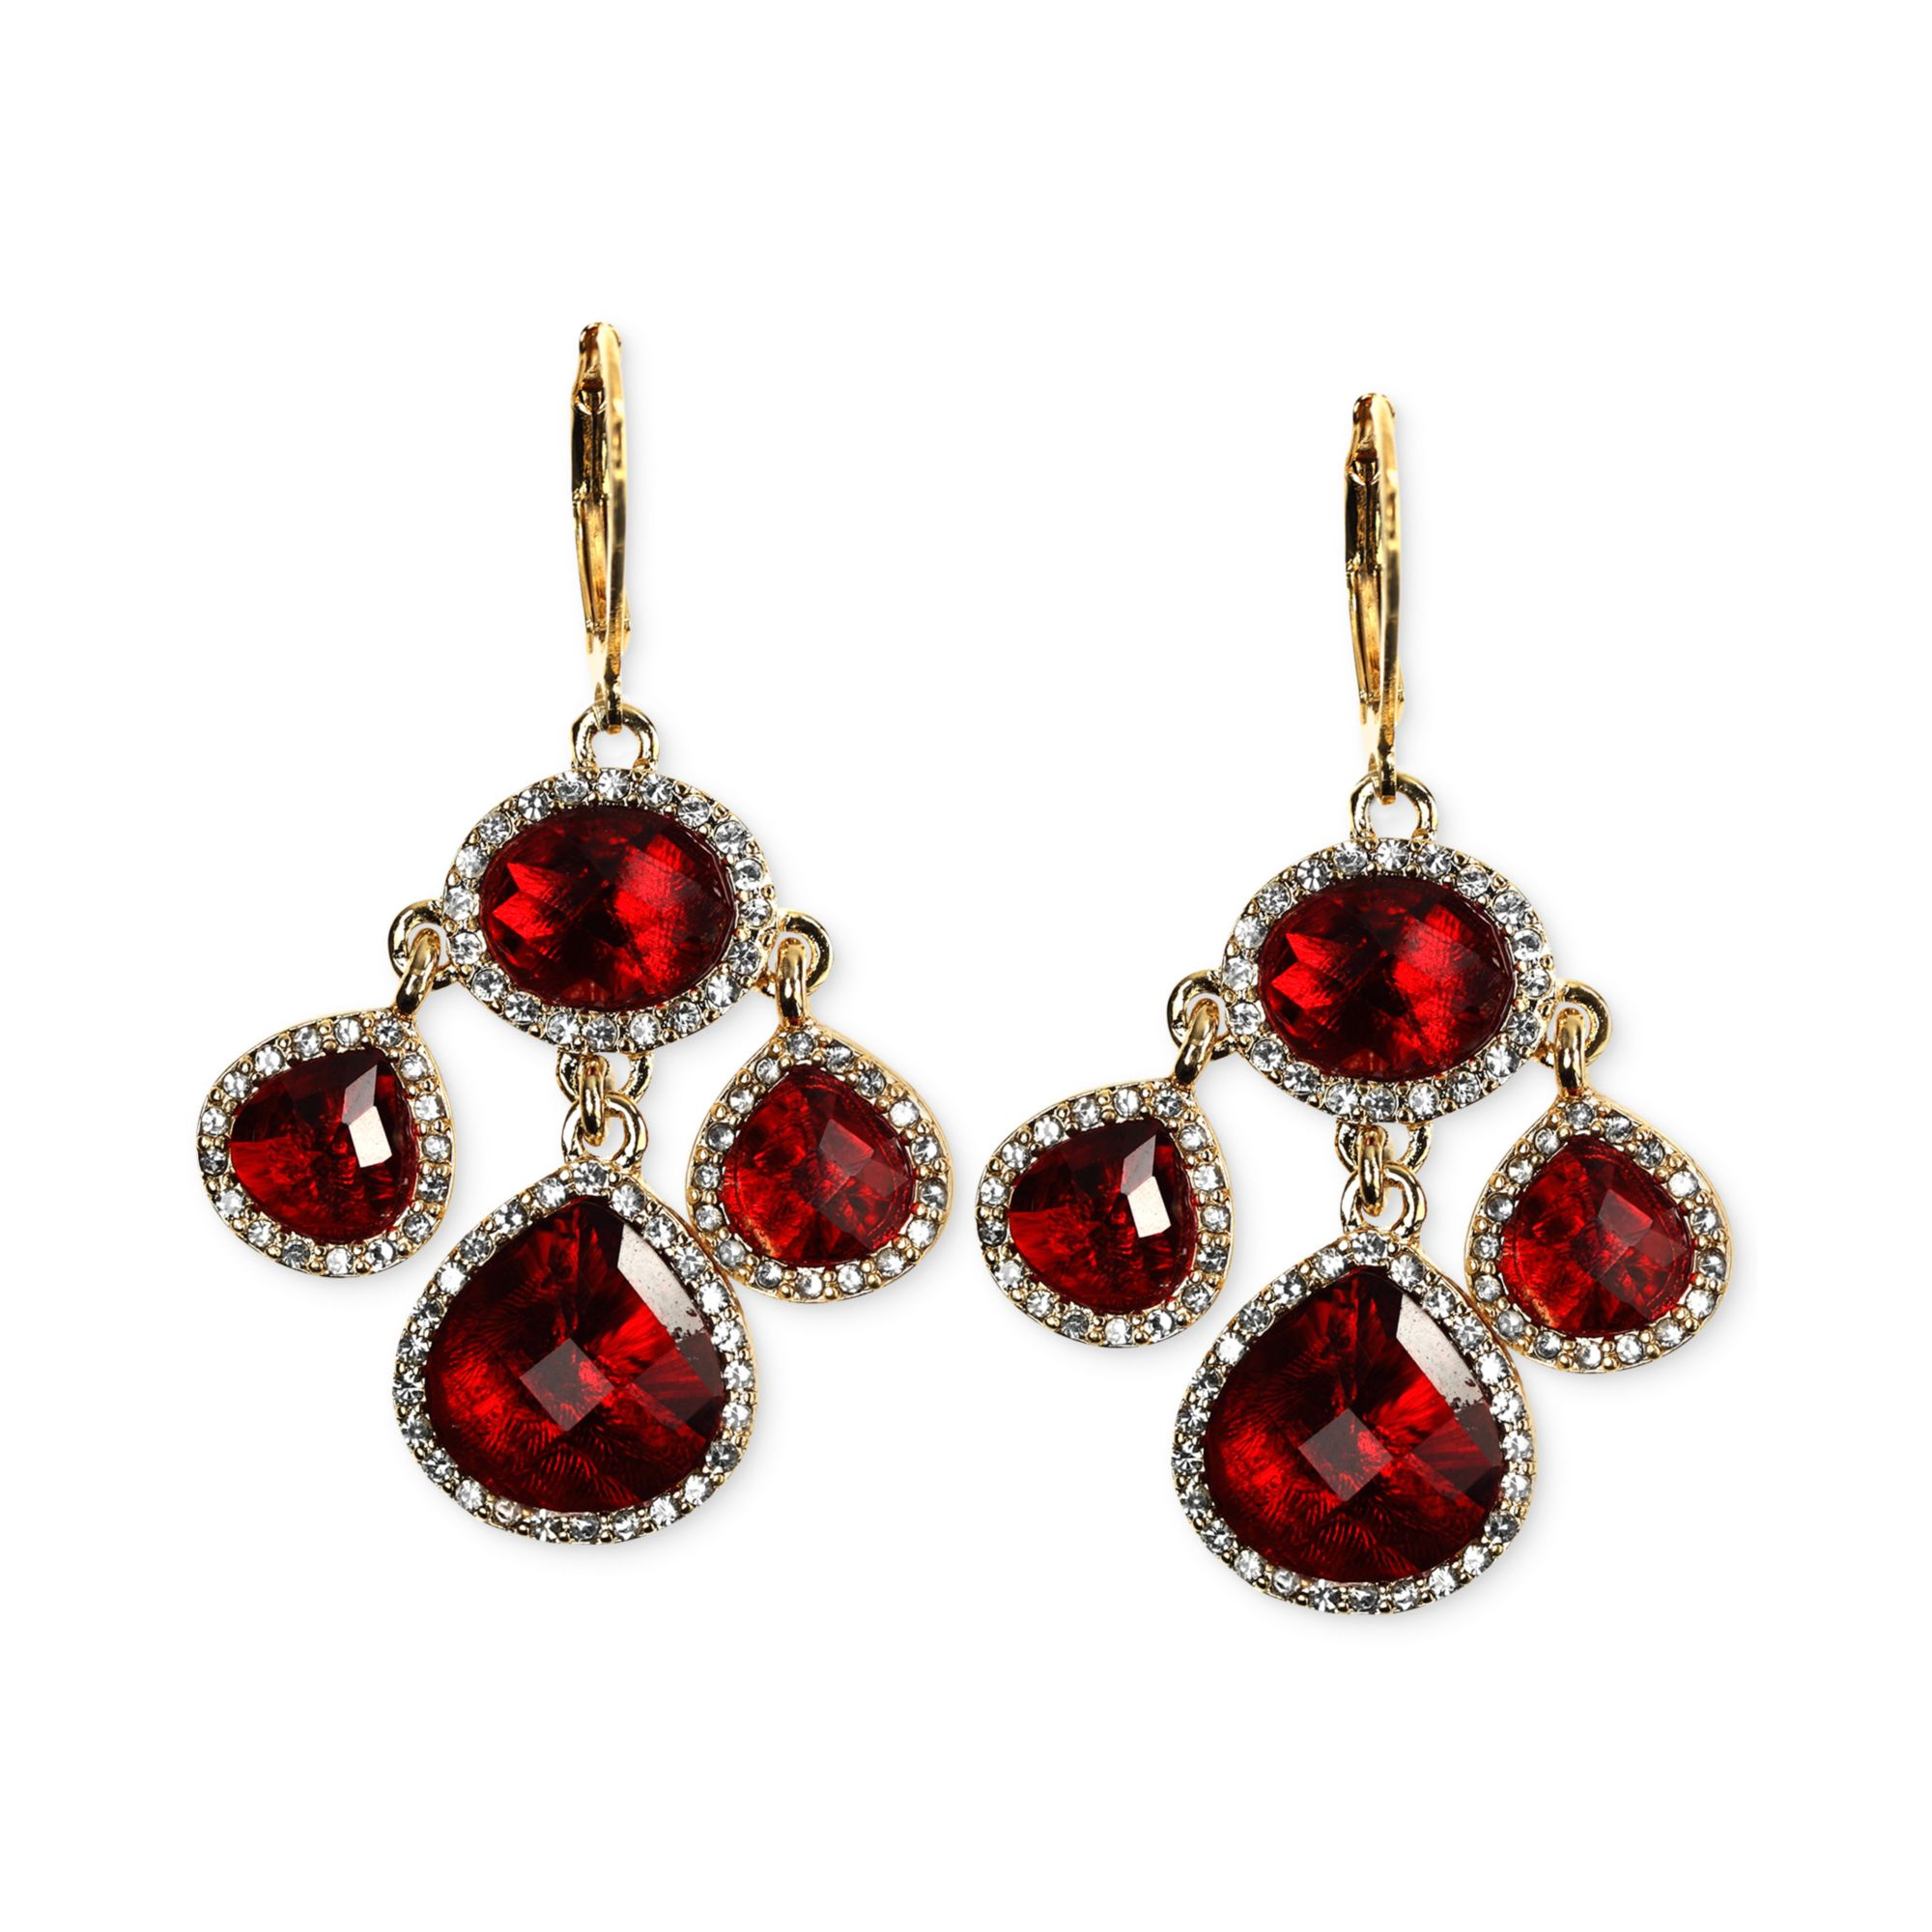 Red Chandelier Earrings: Anne Klein Goldtone Siam Stone And Crystal Pave Chandelier